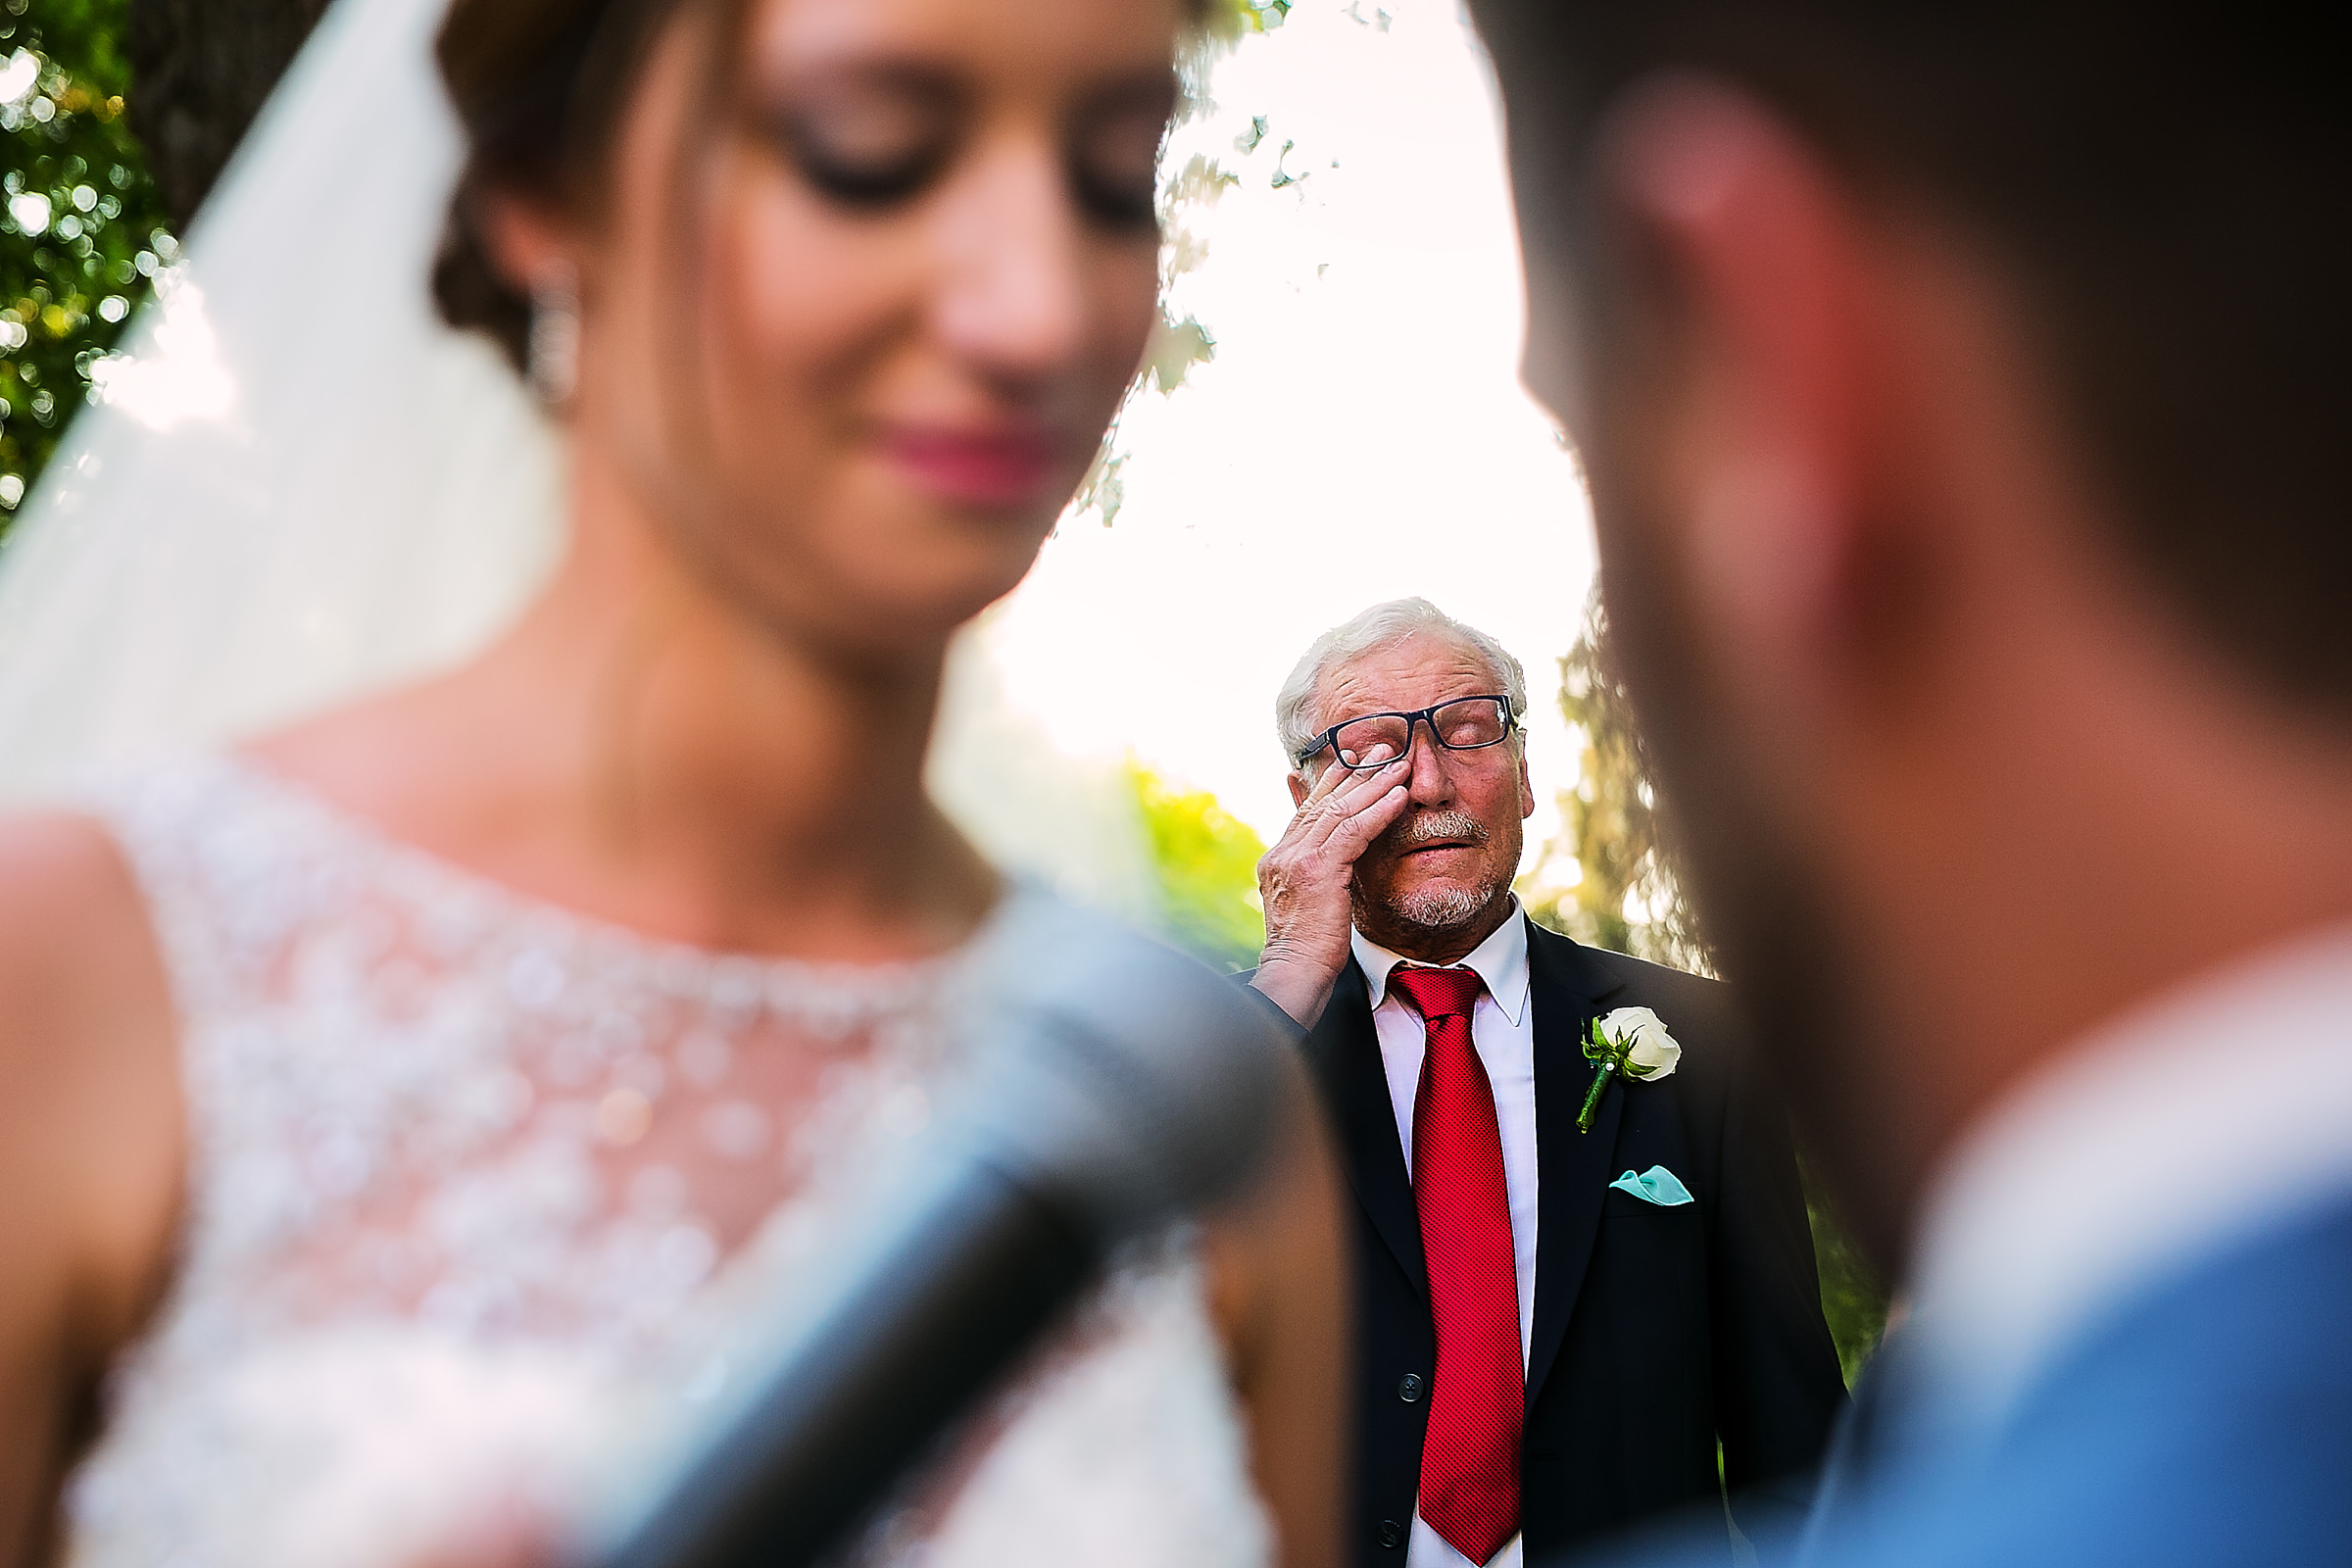 Father wipes a tear at ceremony - photo by D2 Photography